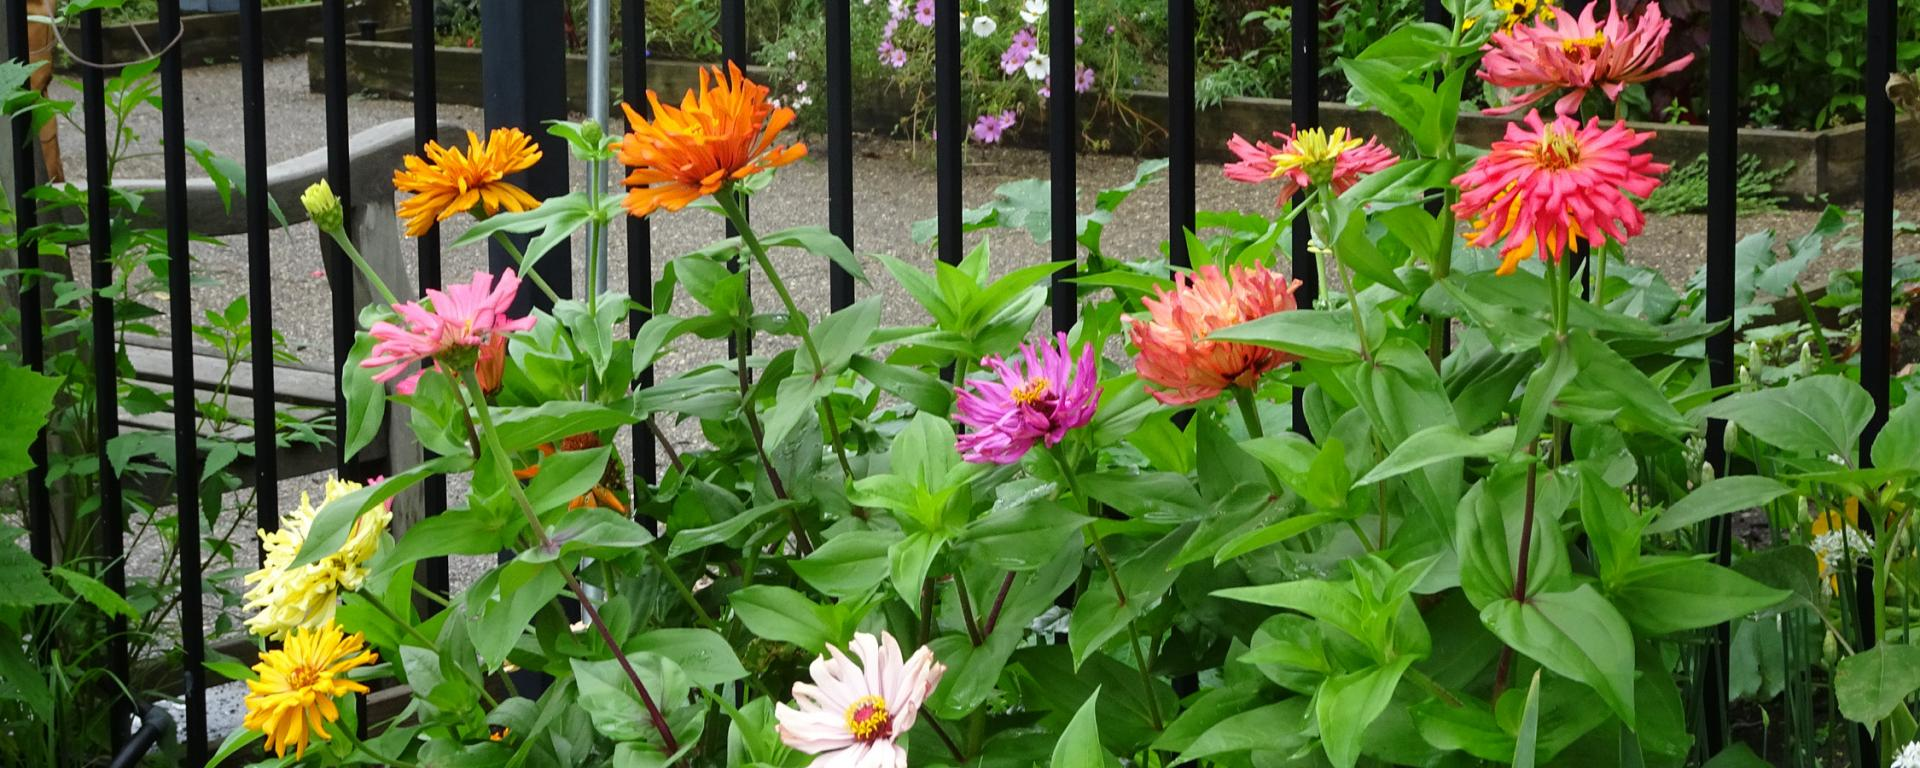 colorful flowers by a fence